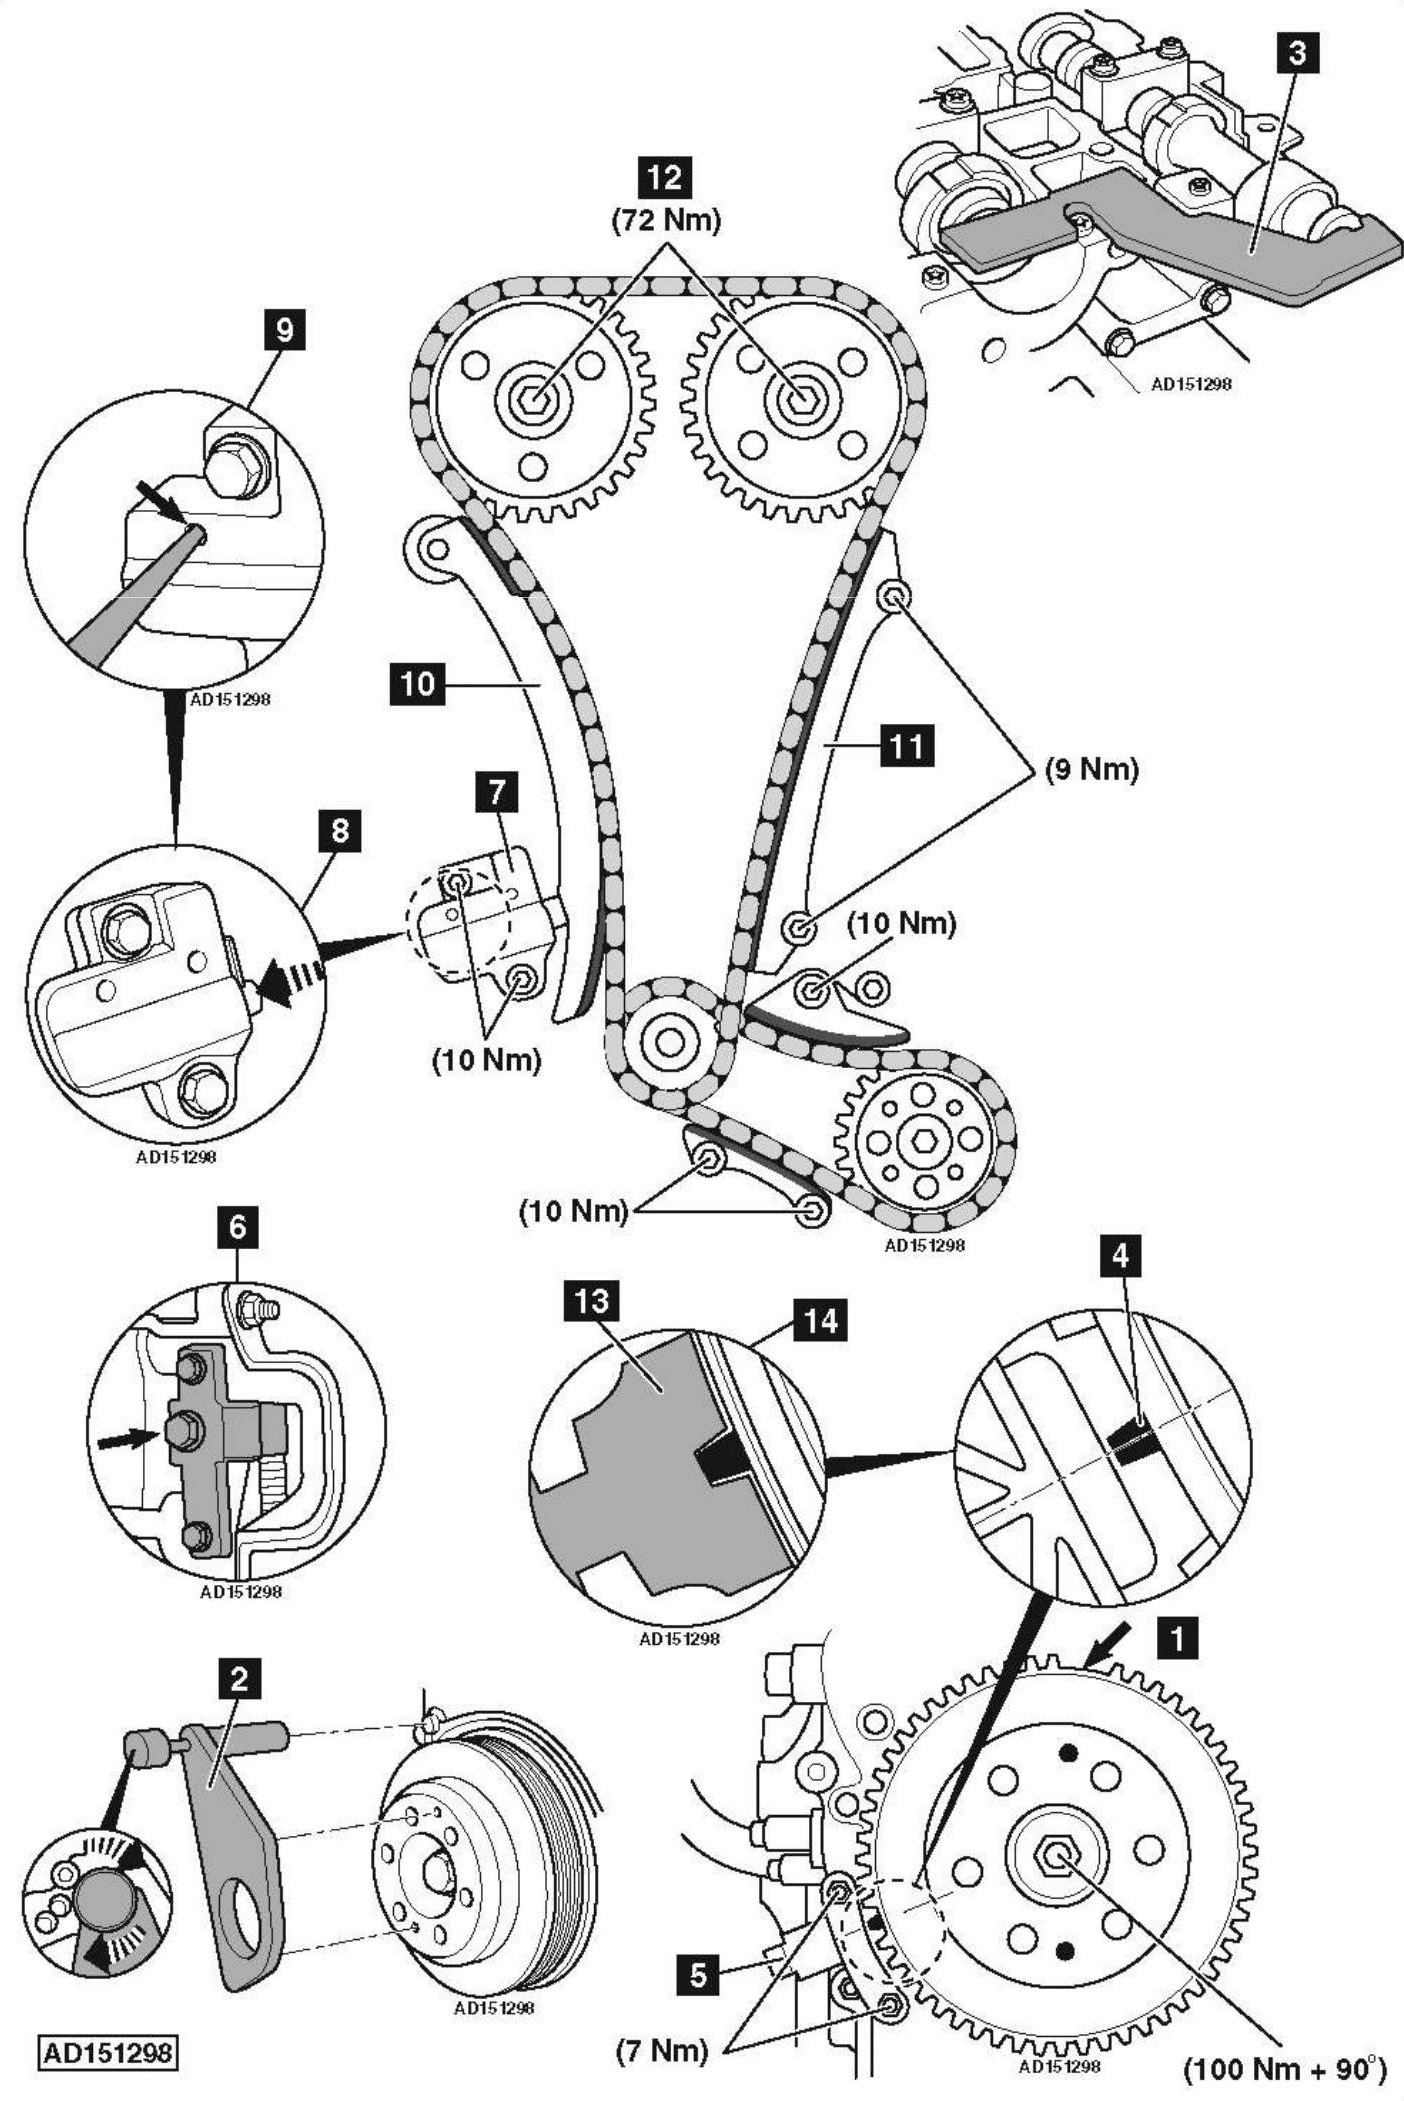 2 Ecotec Timing Chain Diagram